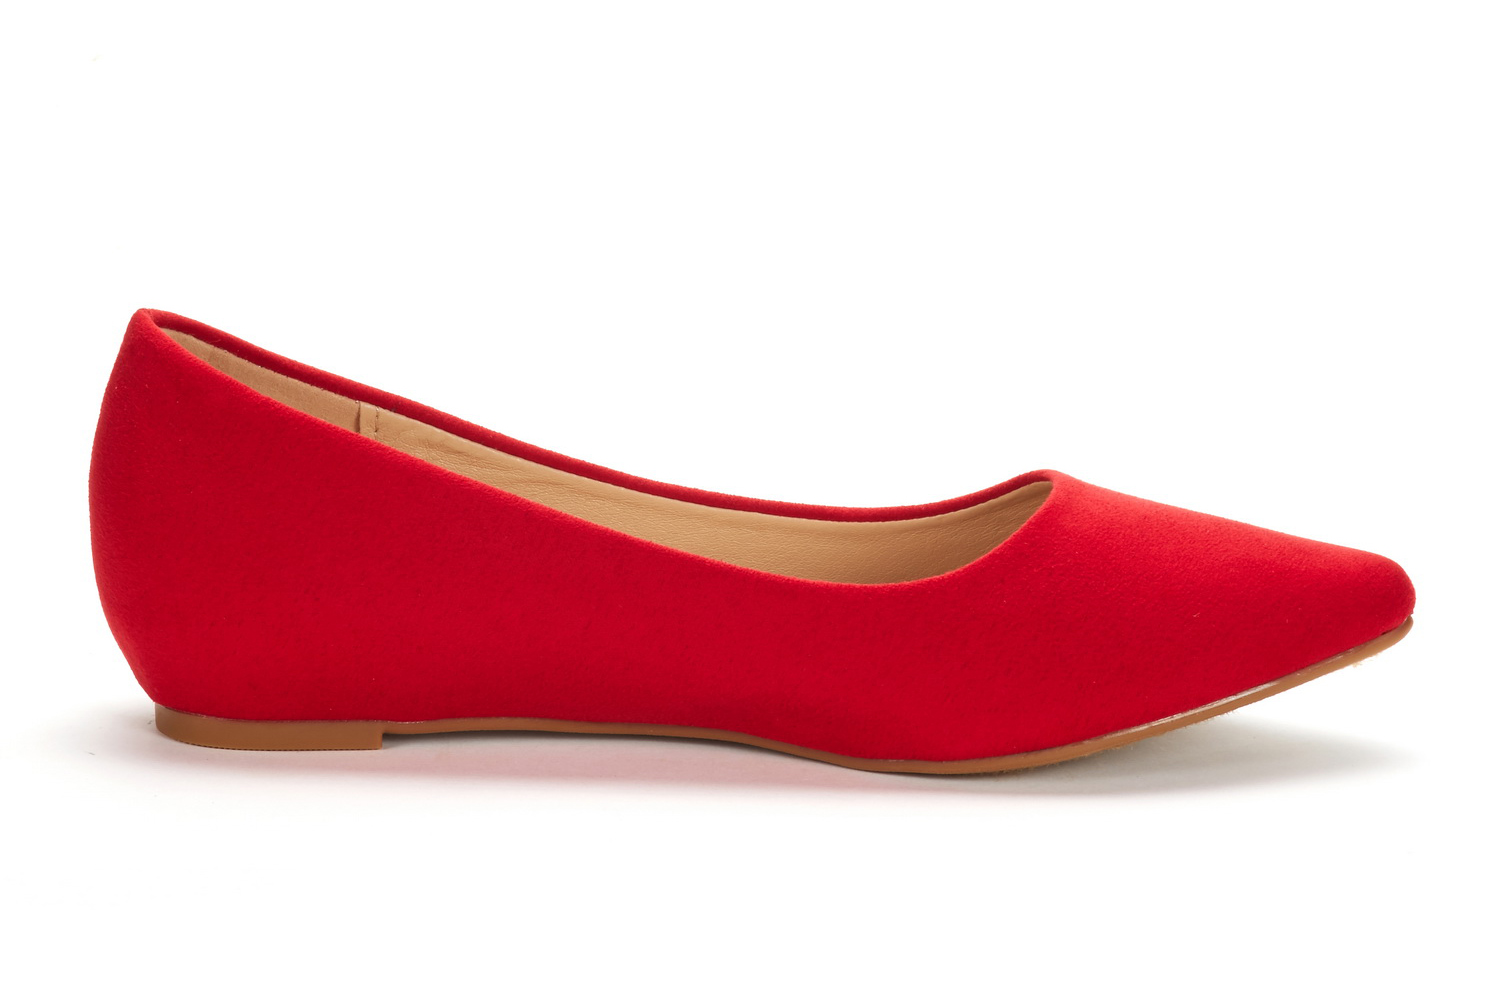 DREAM-PAIRS-Women-Low-Wedge-Flats-Ladies-Pointed-Toe-Slip-On-Comfort-Flat-Shoes thumbnail 8